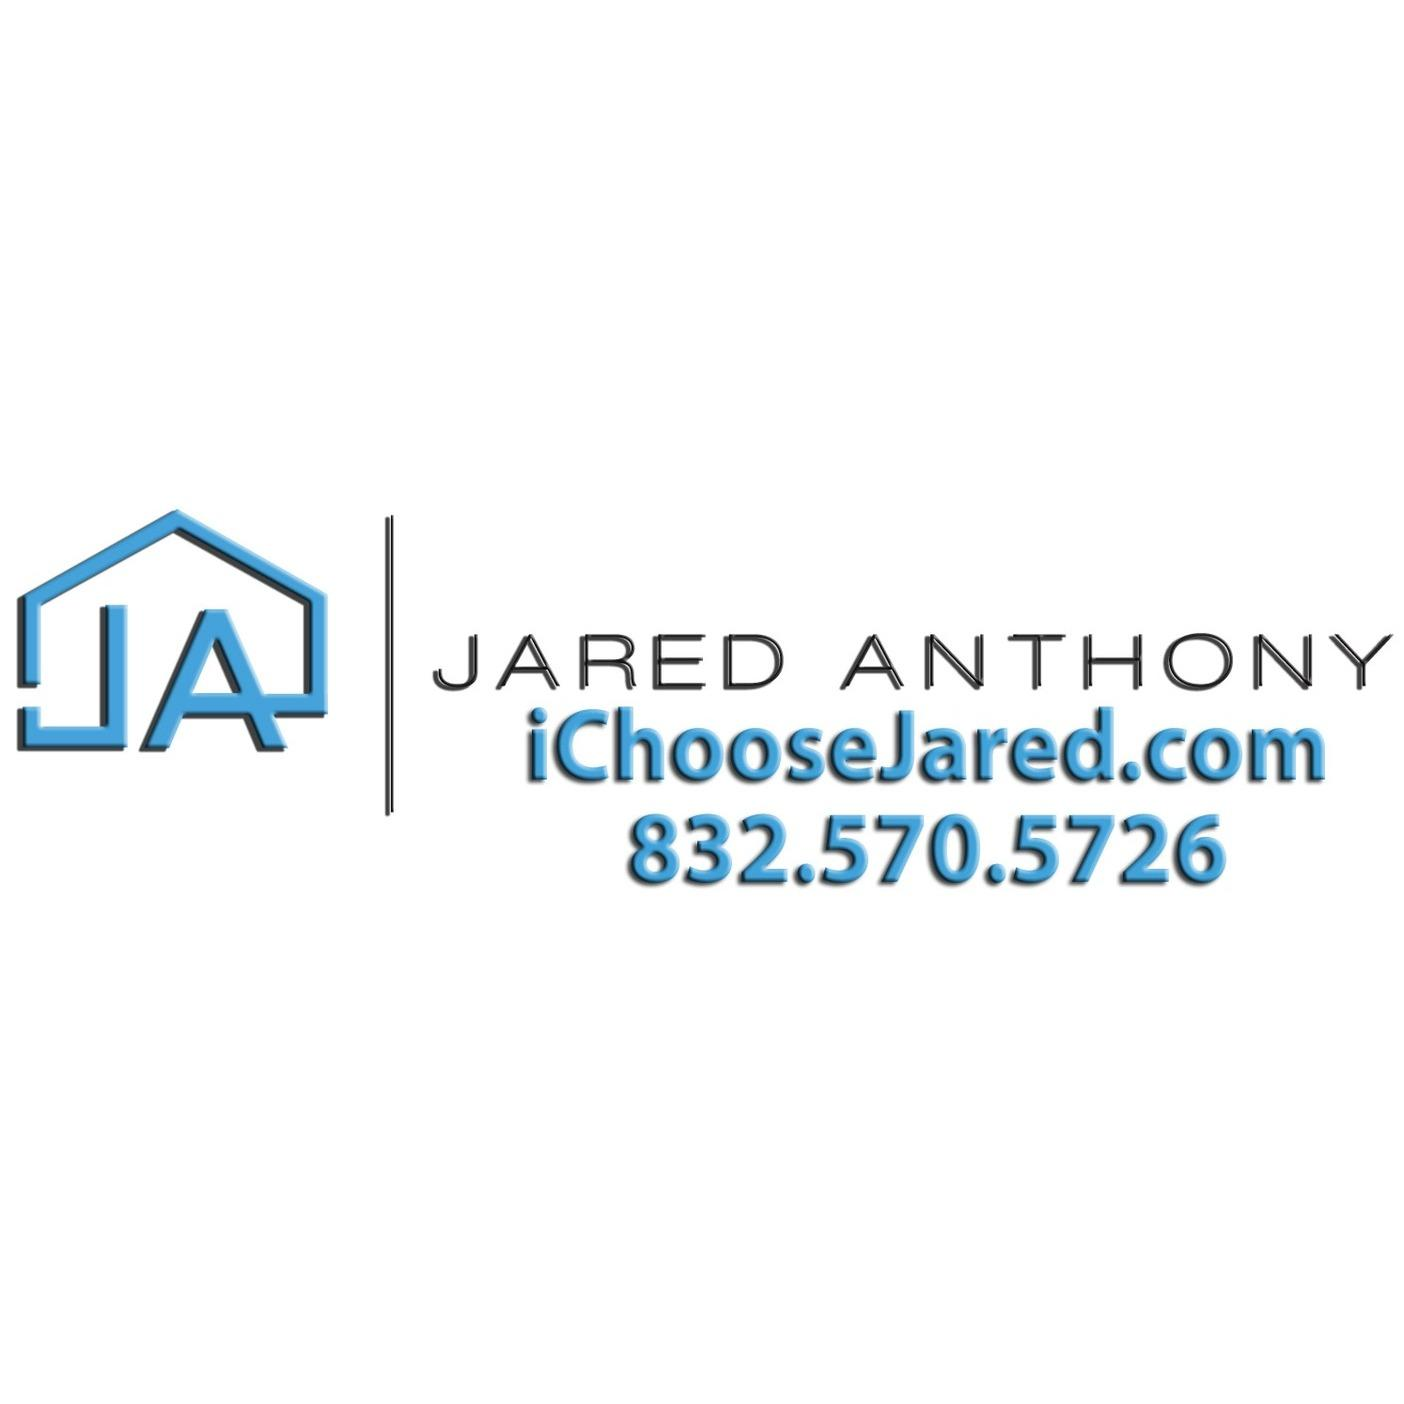 Jared Anthony - NEXTHOME Realty Center